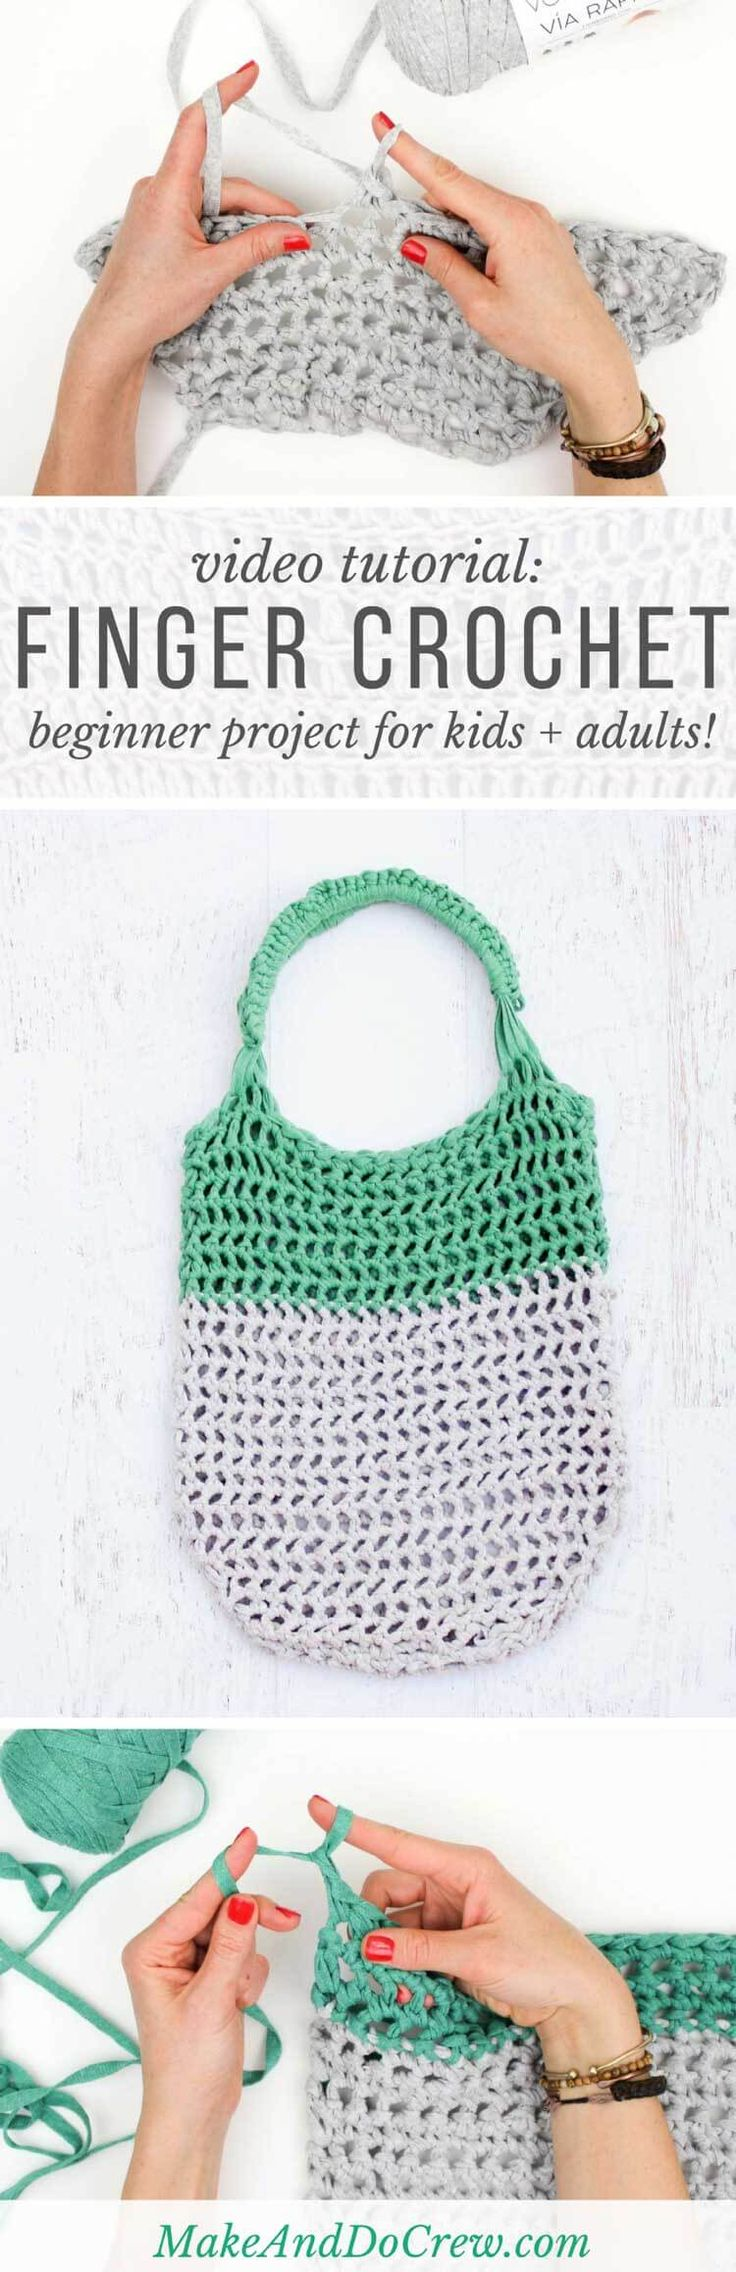 crochet bag tutorial video download